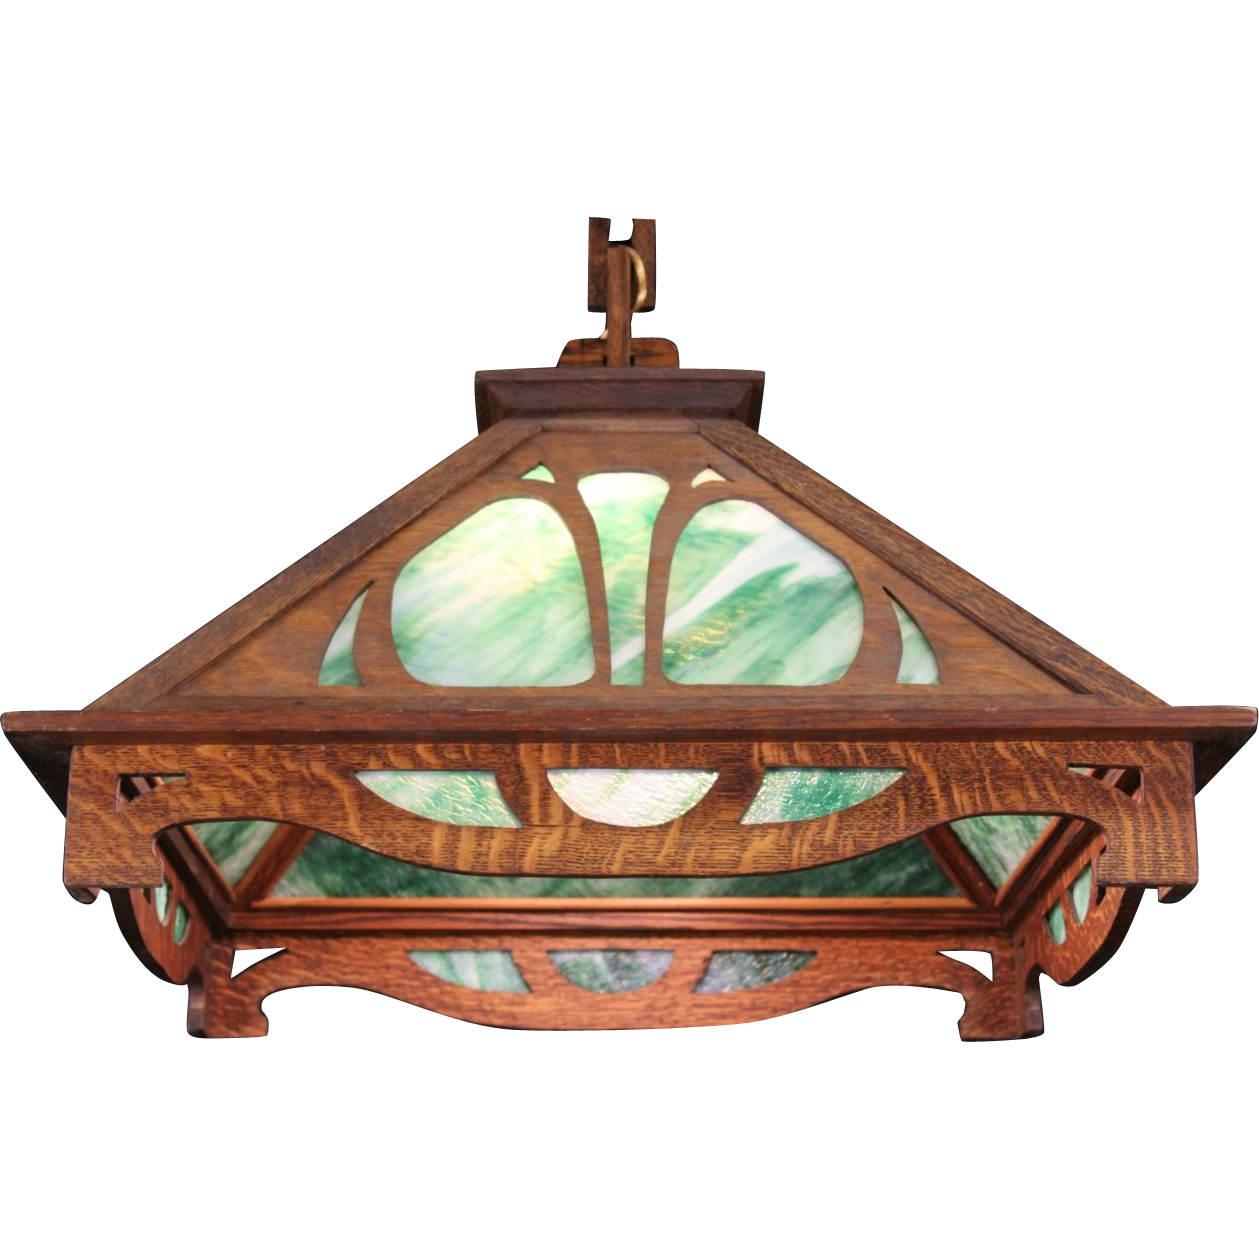 Arts crafts mission oak 1905 stained glass pendant chandelier arts crafts mission oak 1905 stained glass pendant chandelier light fixture arubaitofo Gallery